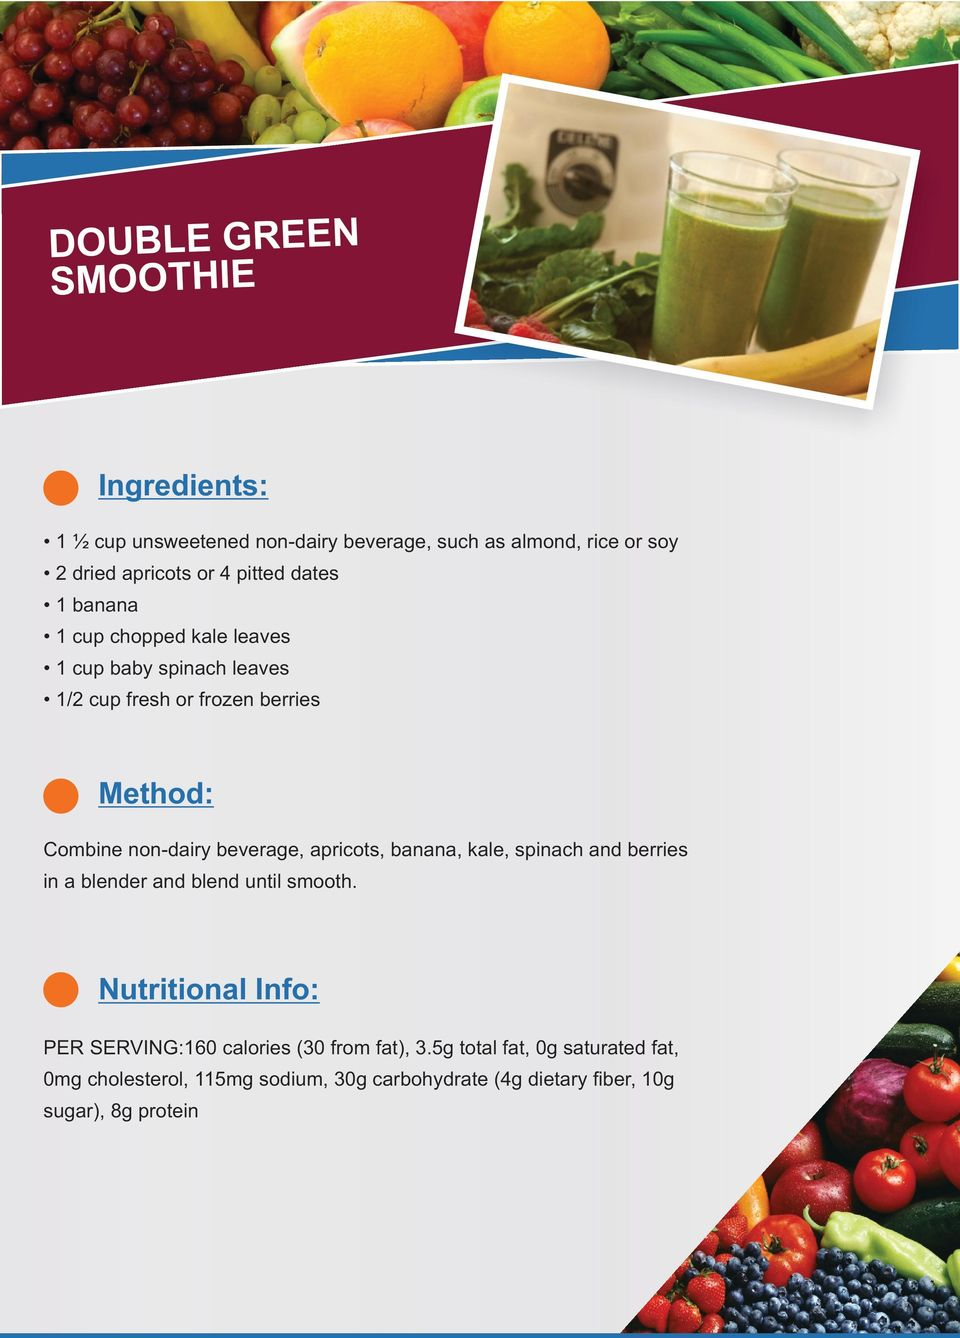 apricots, banana, kale, spinach and berries in a blender and blend until smooth.